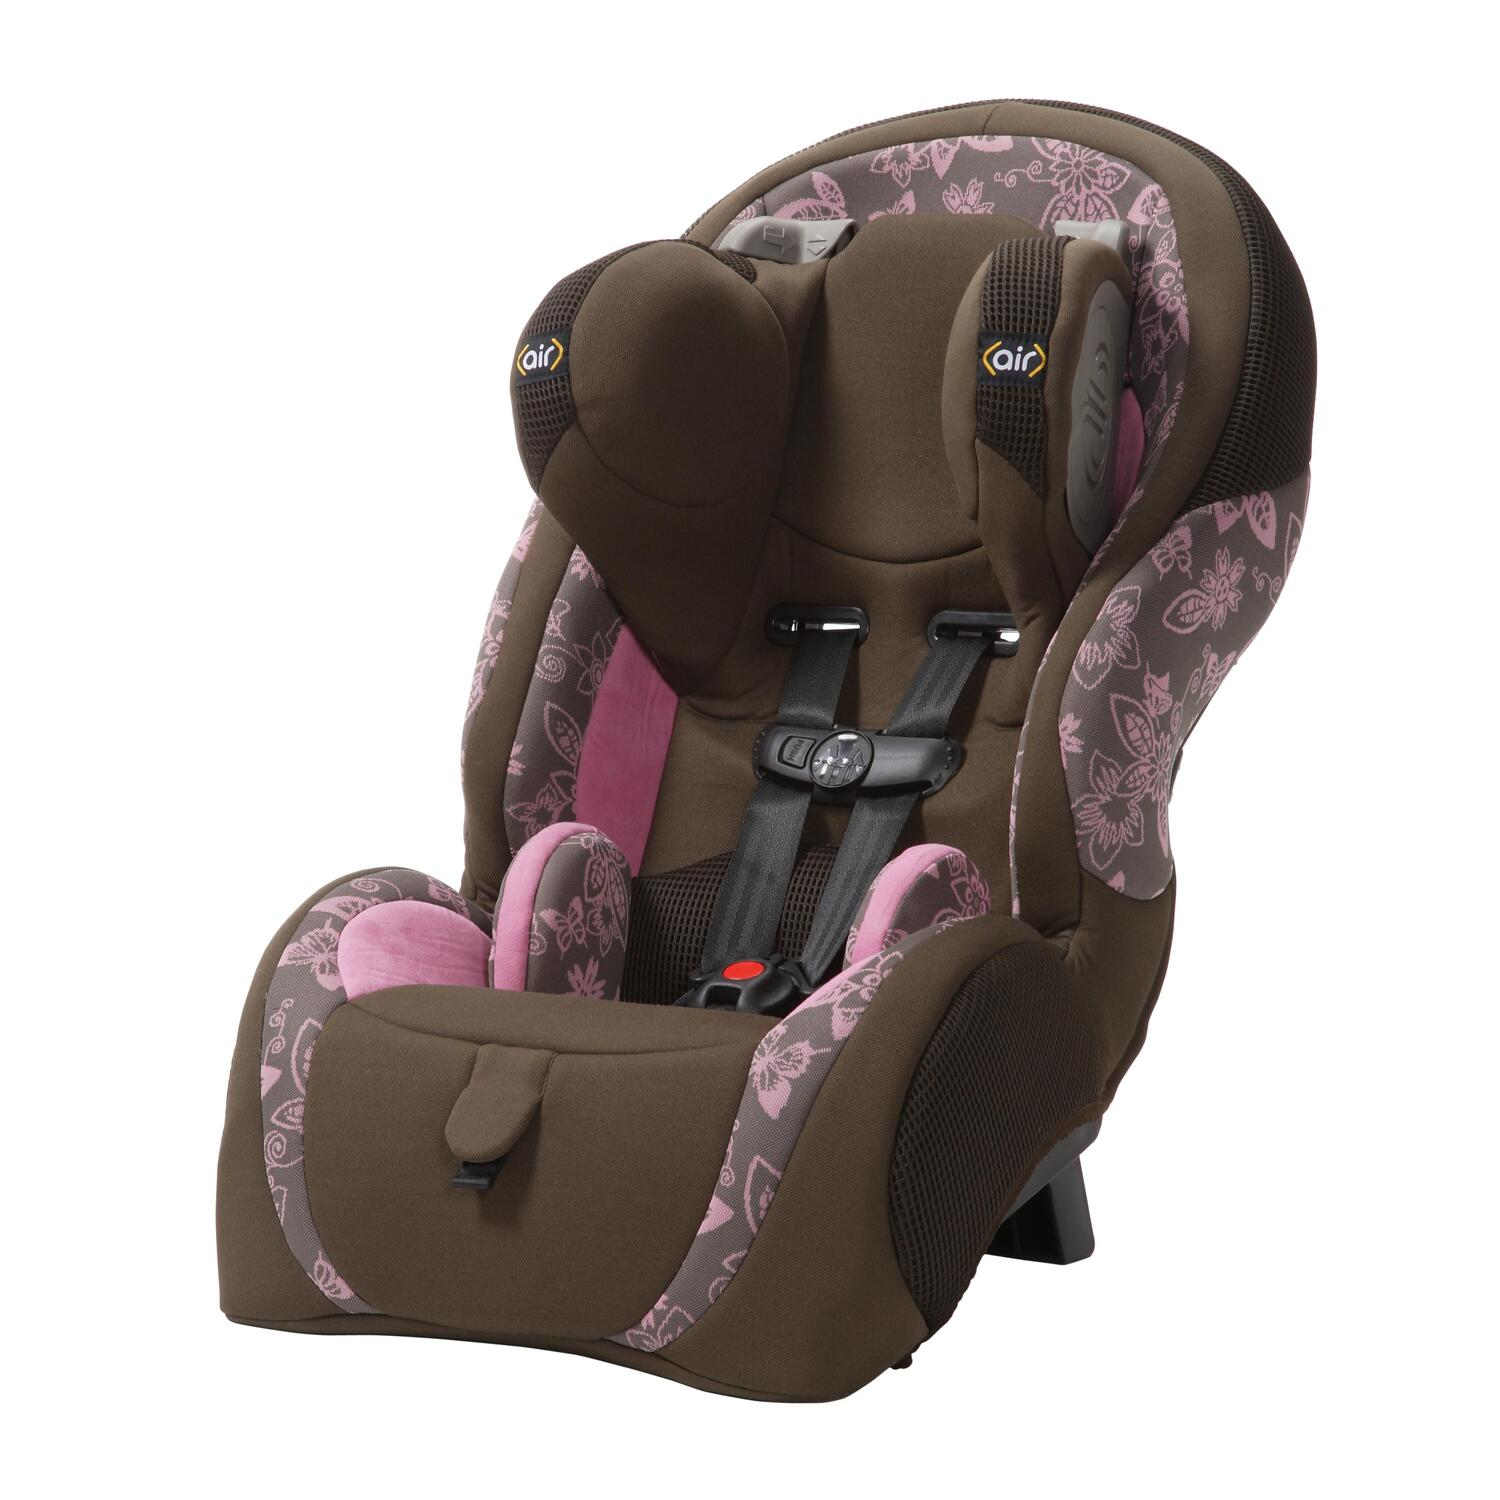 the gallery for safety first car seat air. Black Bedroom Furniture Sets. Home Design Ideas